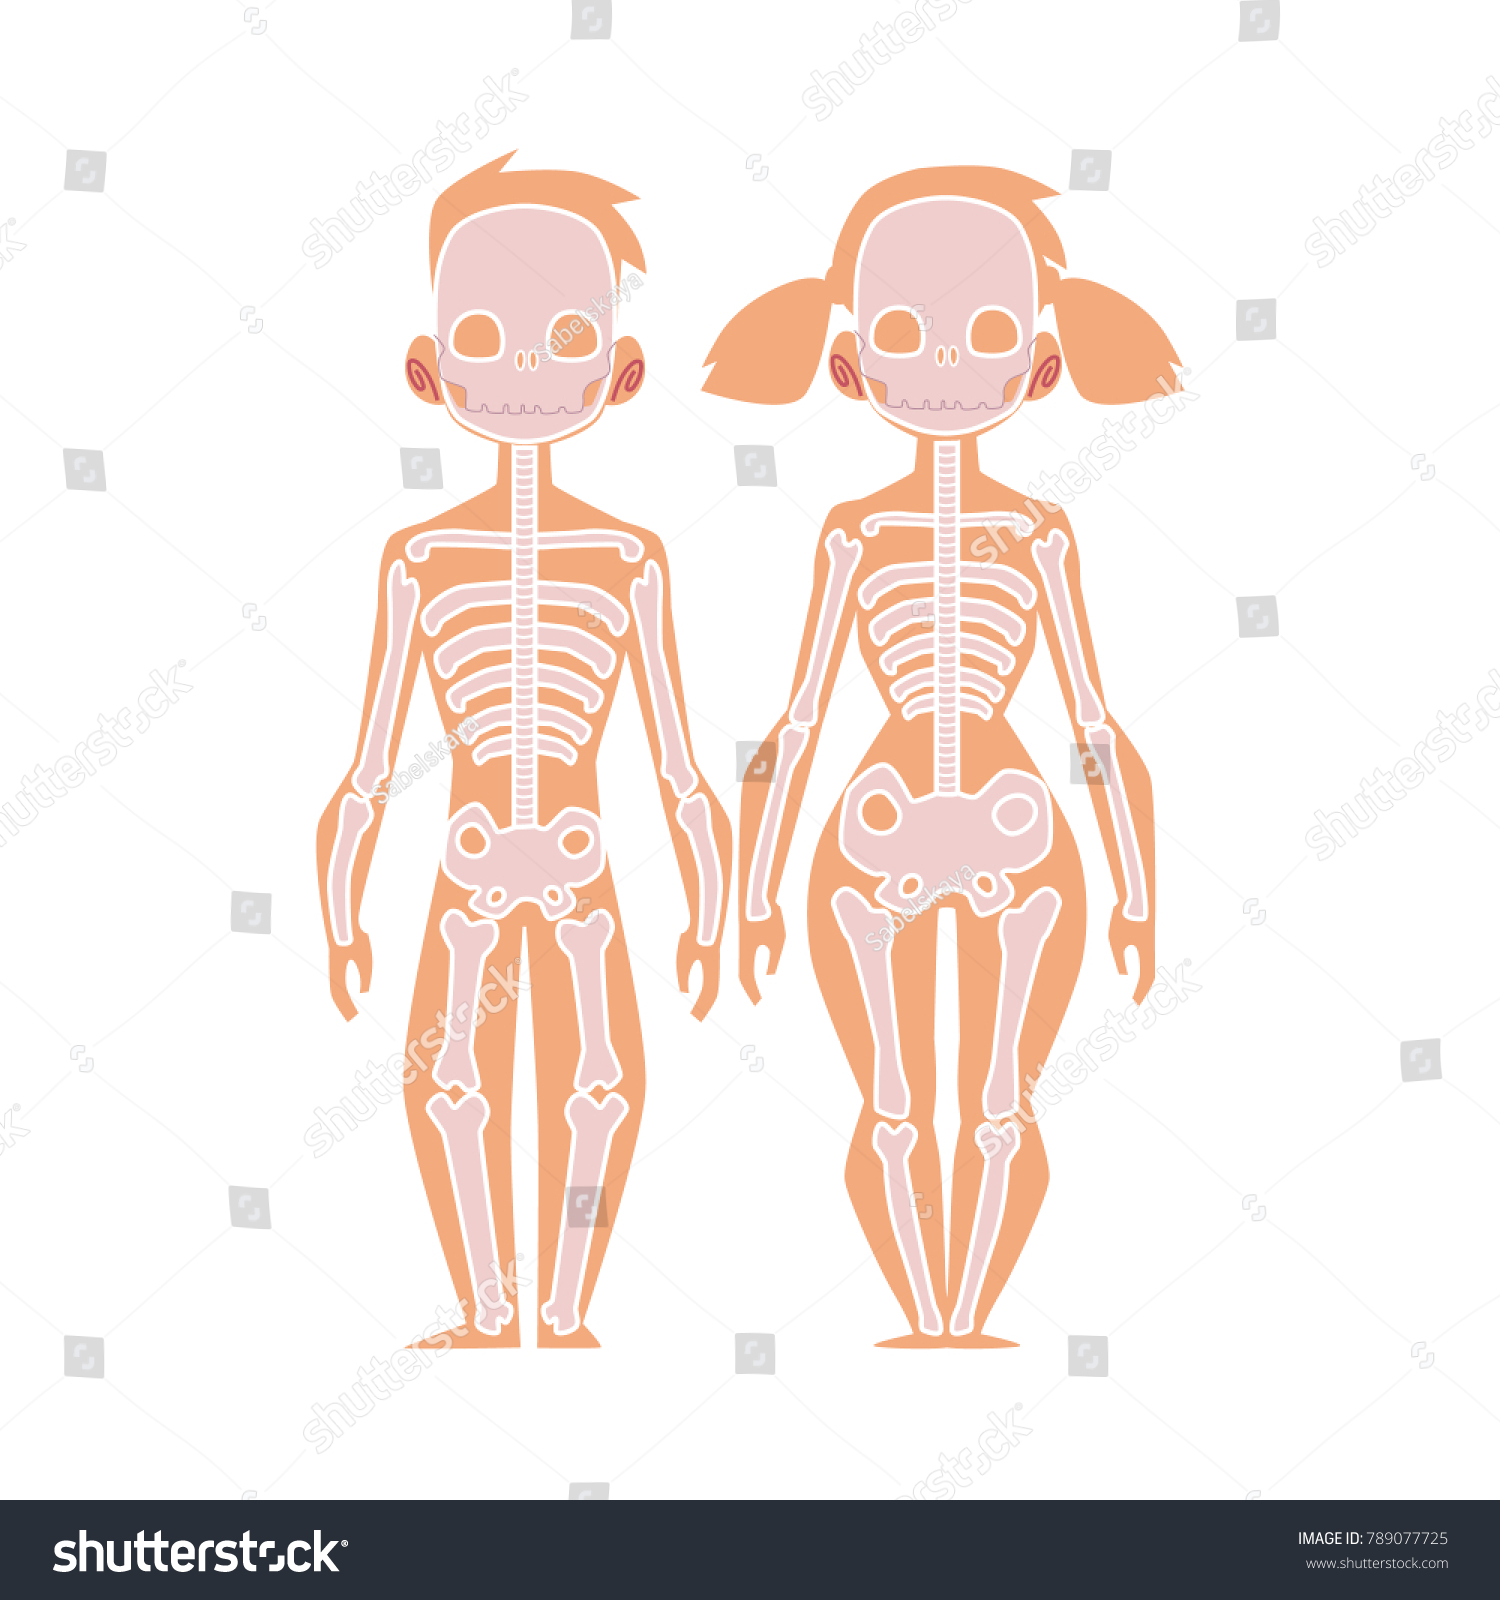 Vector Flat Structure Human Body Anatomy Stock Vector (Royalty Free ...